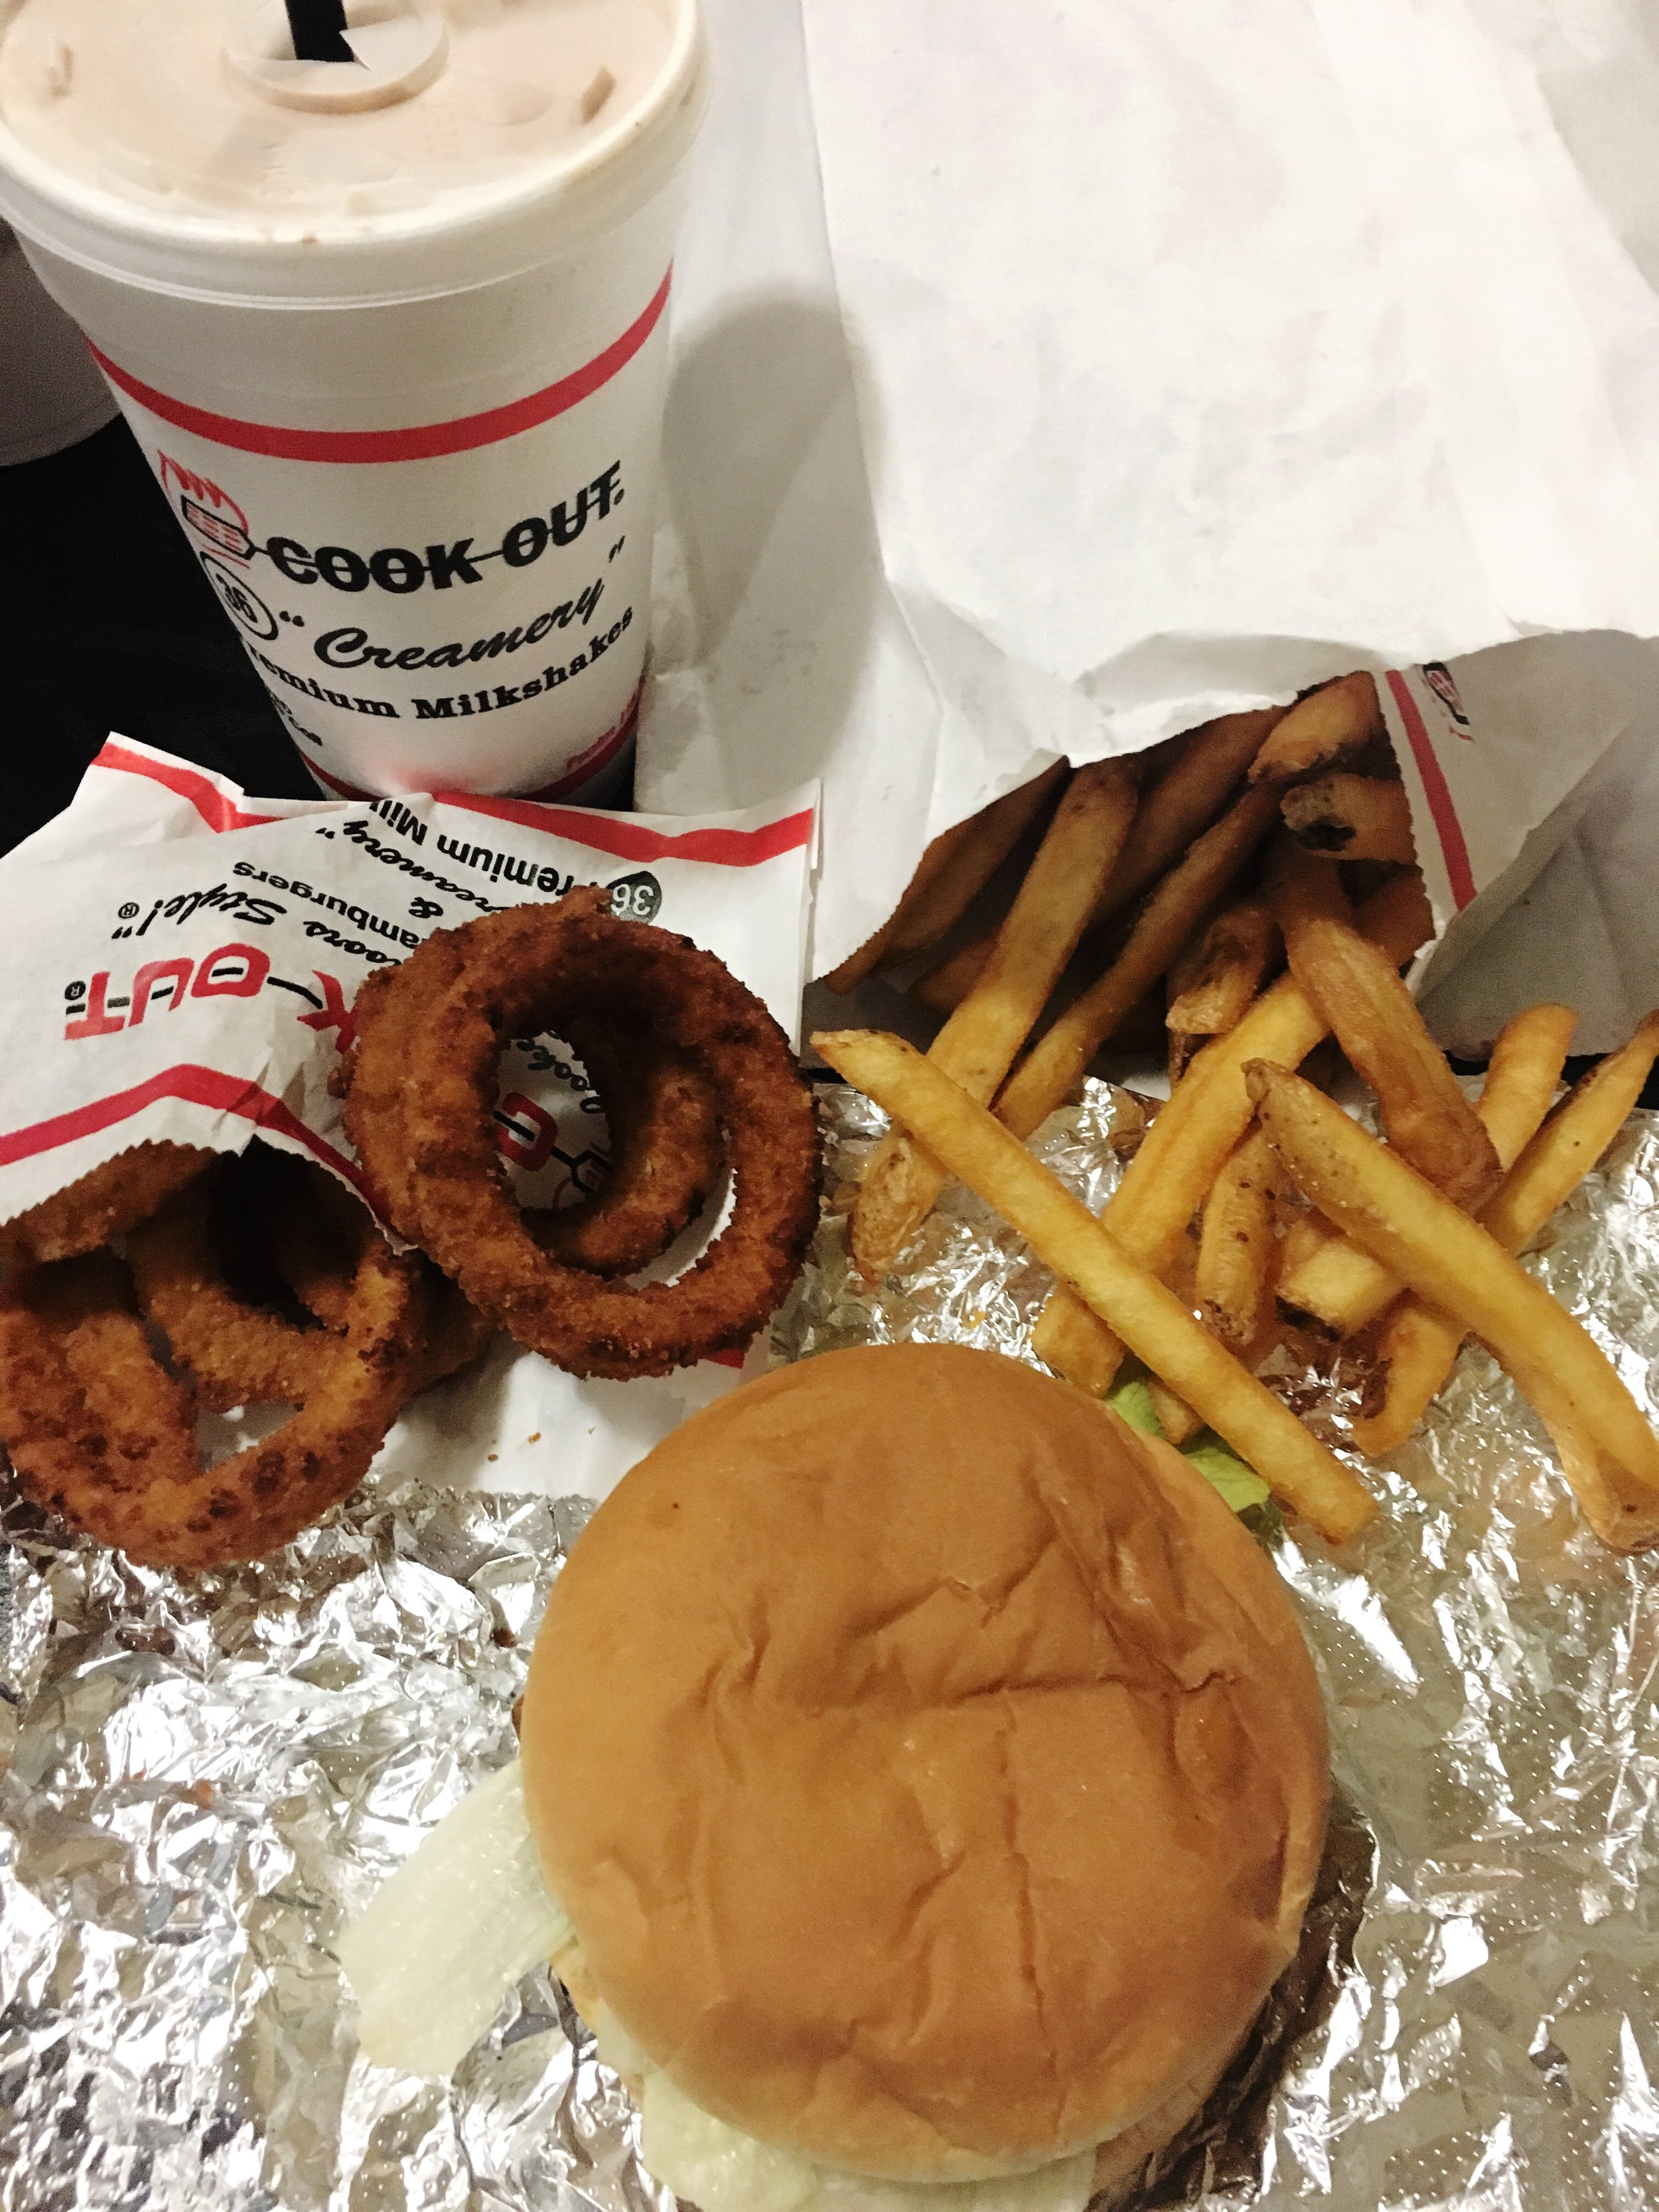 my first cook-out stop